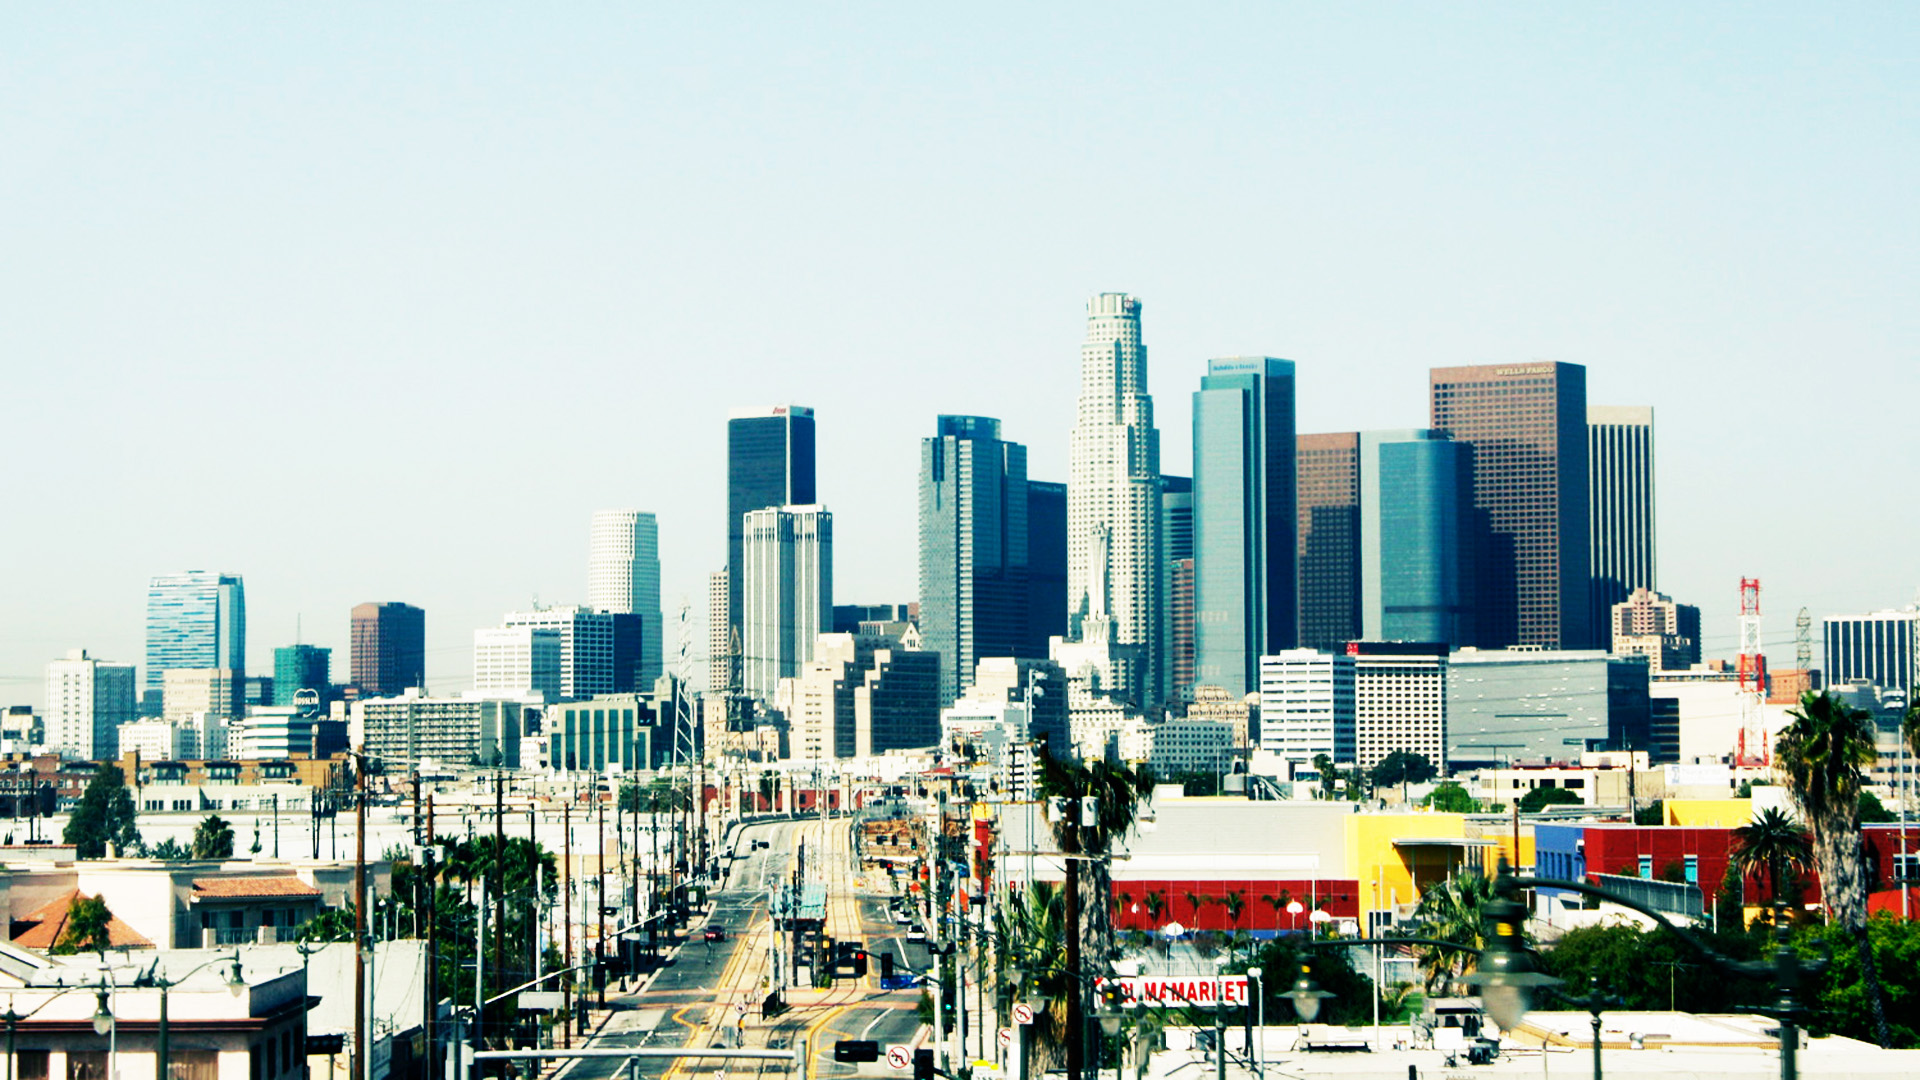 Download Los Angeles Downtown Wallpaper Gallery